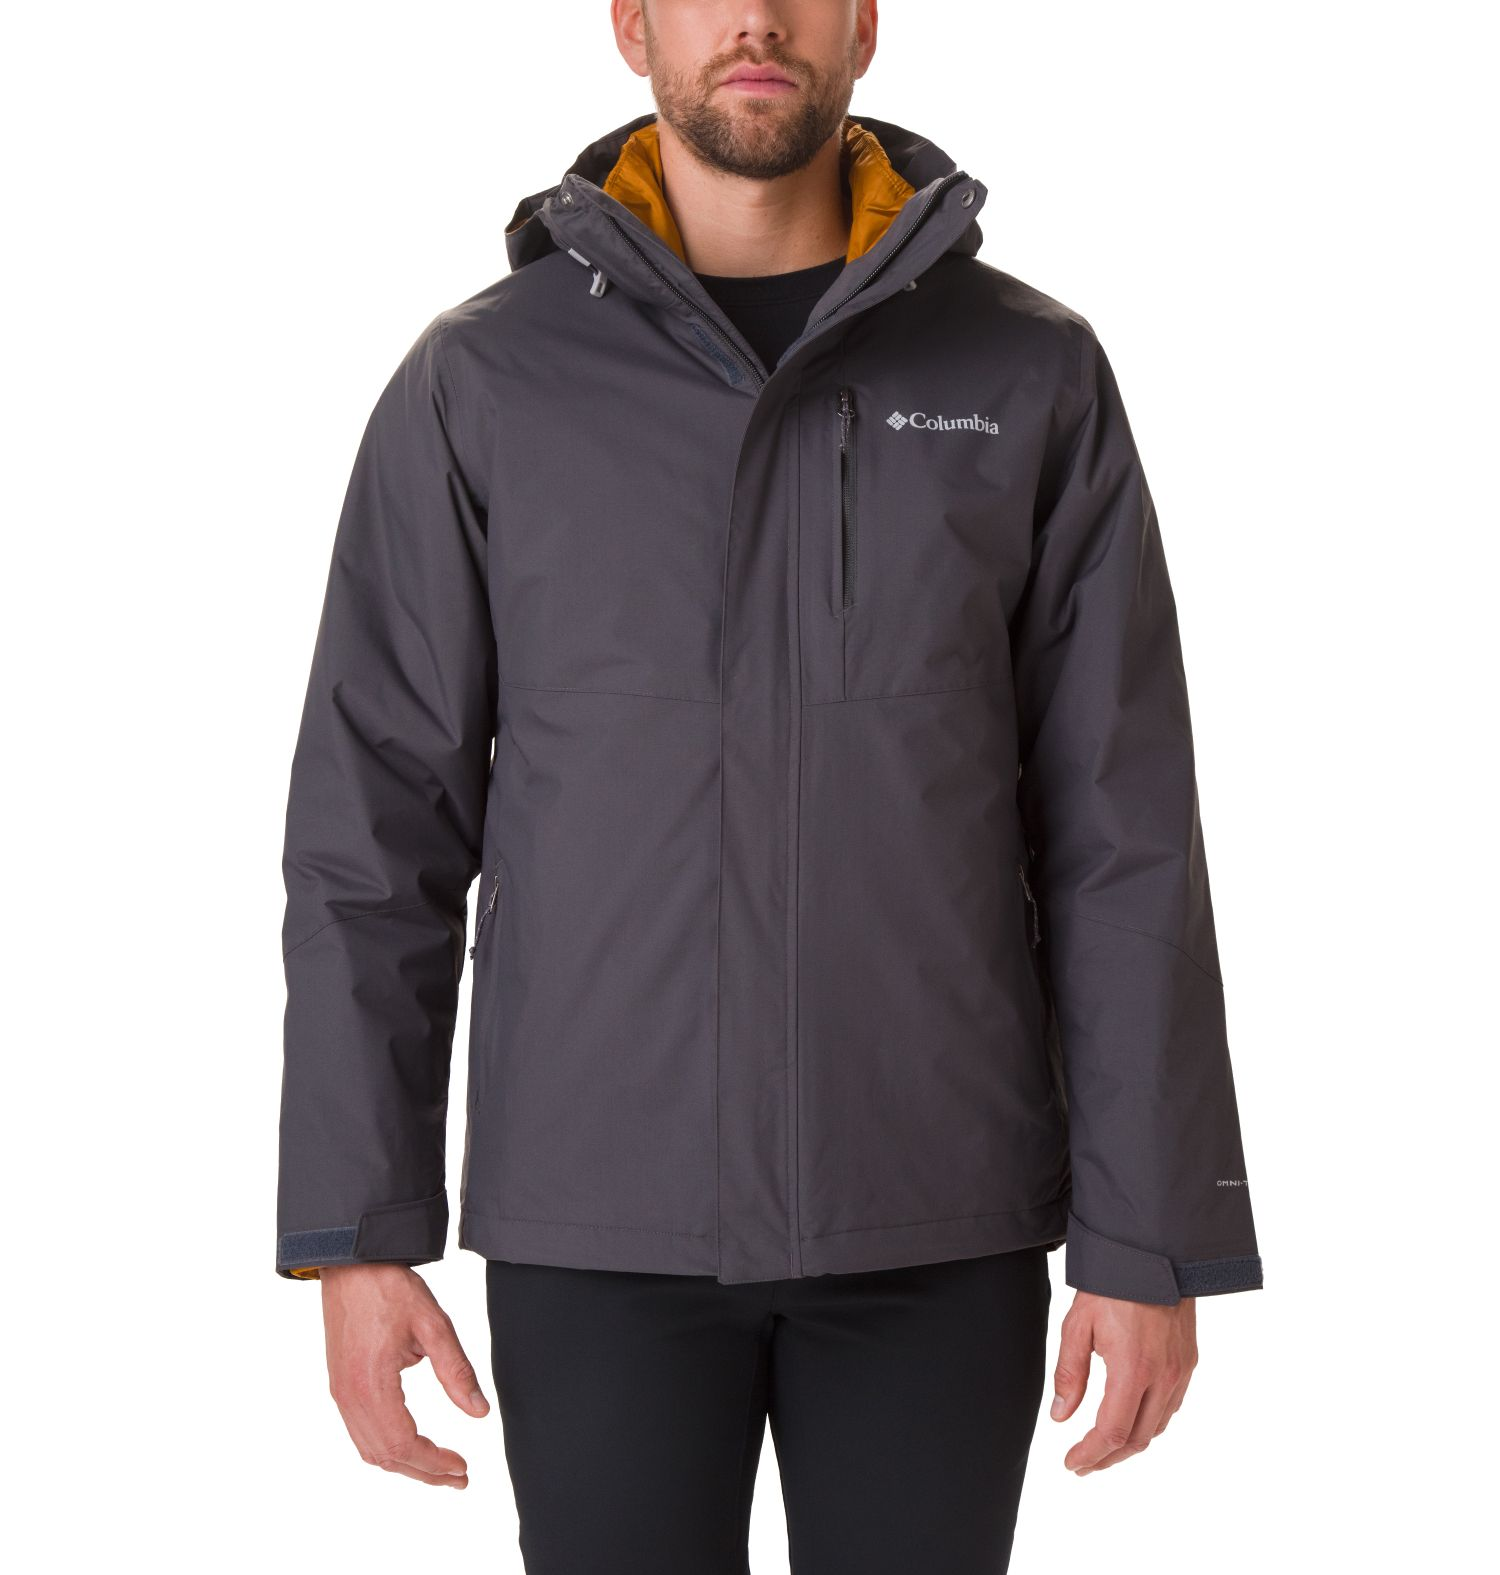 CHAQUETA  ELEMENT BLOCKER II INTERCHANGE SYSTEM  100% NYLON 210T Omni-TECH WATERPROOF BREATHABLE SHARK/BURNISHED AMBER